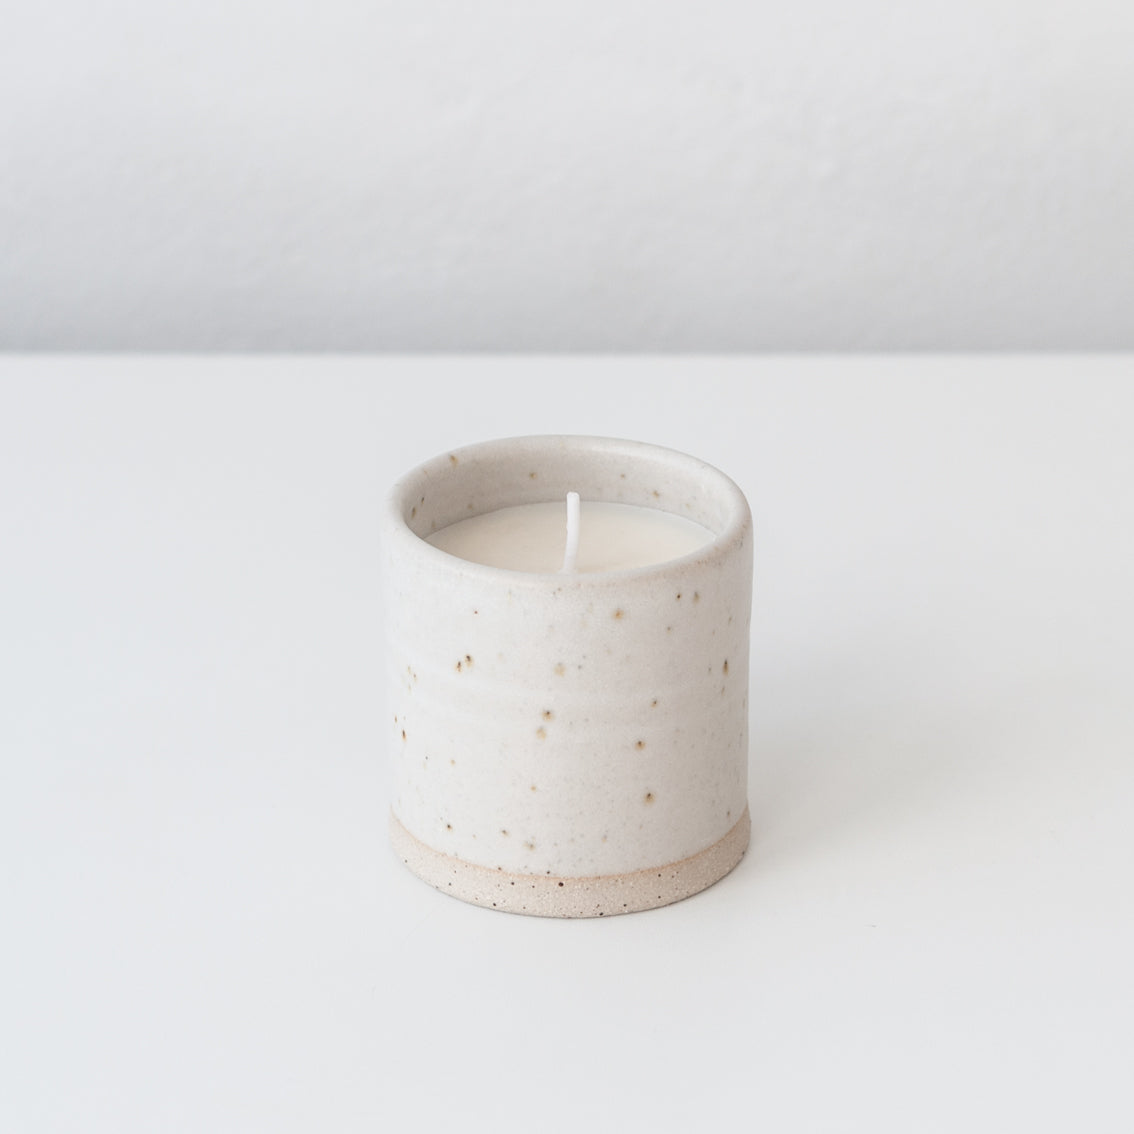 NORTH COAST Candle - 160g, Candle - DOR & TAN | Contemporary Handmade Tableware